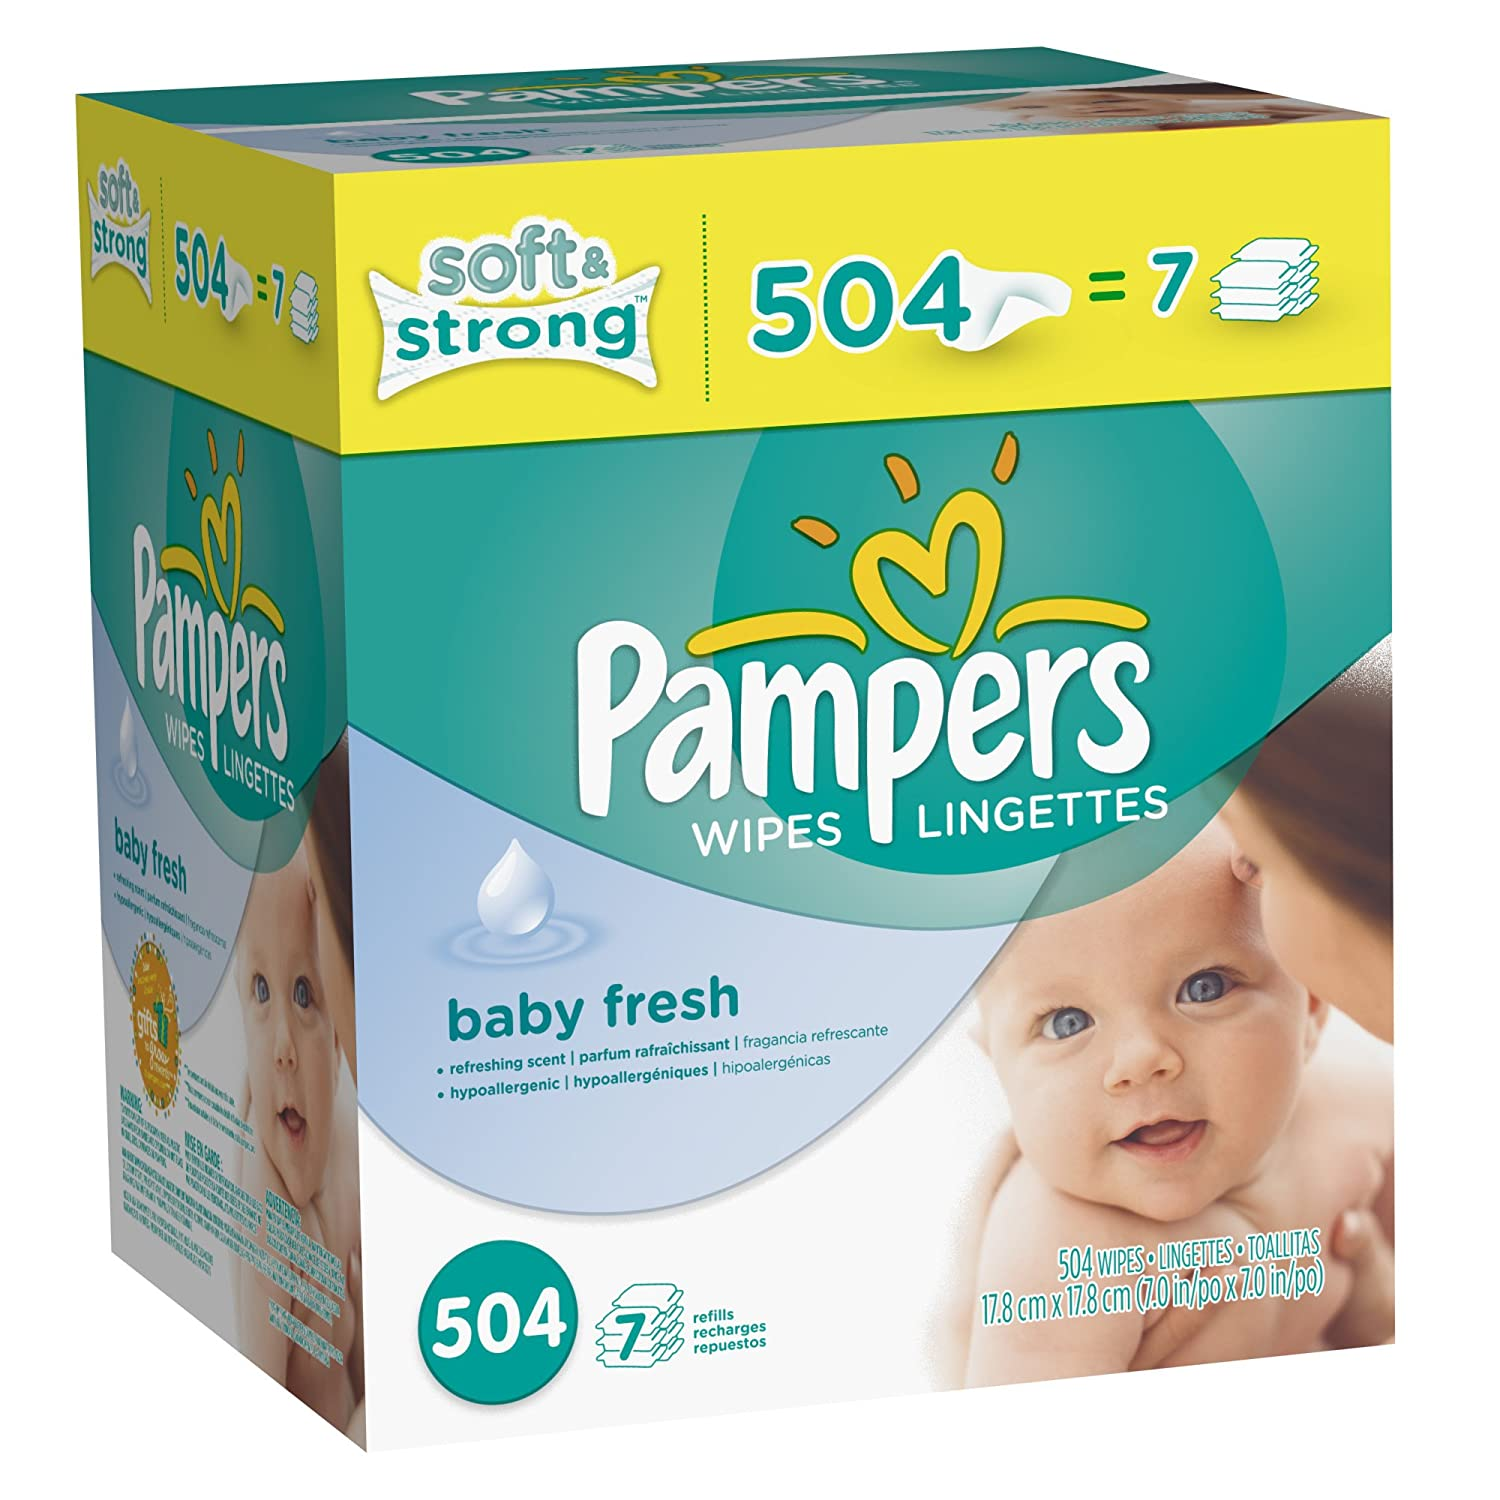 Pampers Softcare Baby Fresh Wipes 7x box, 504 Count $10